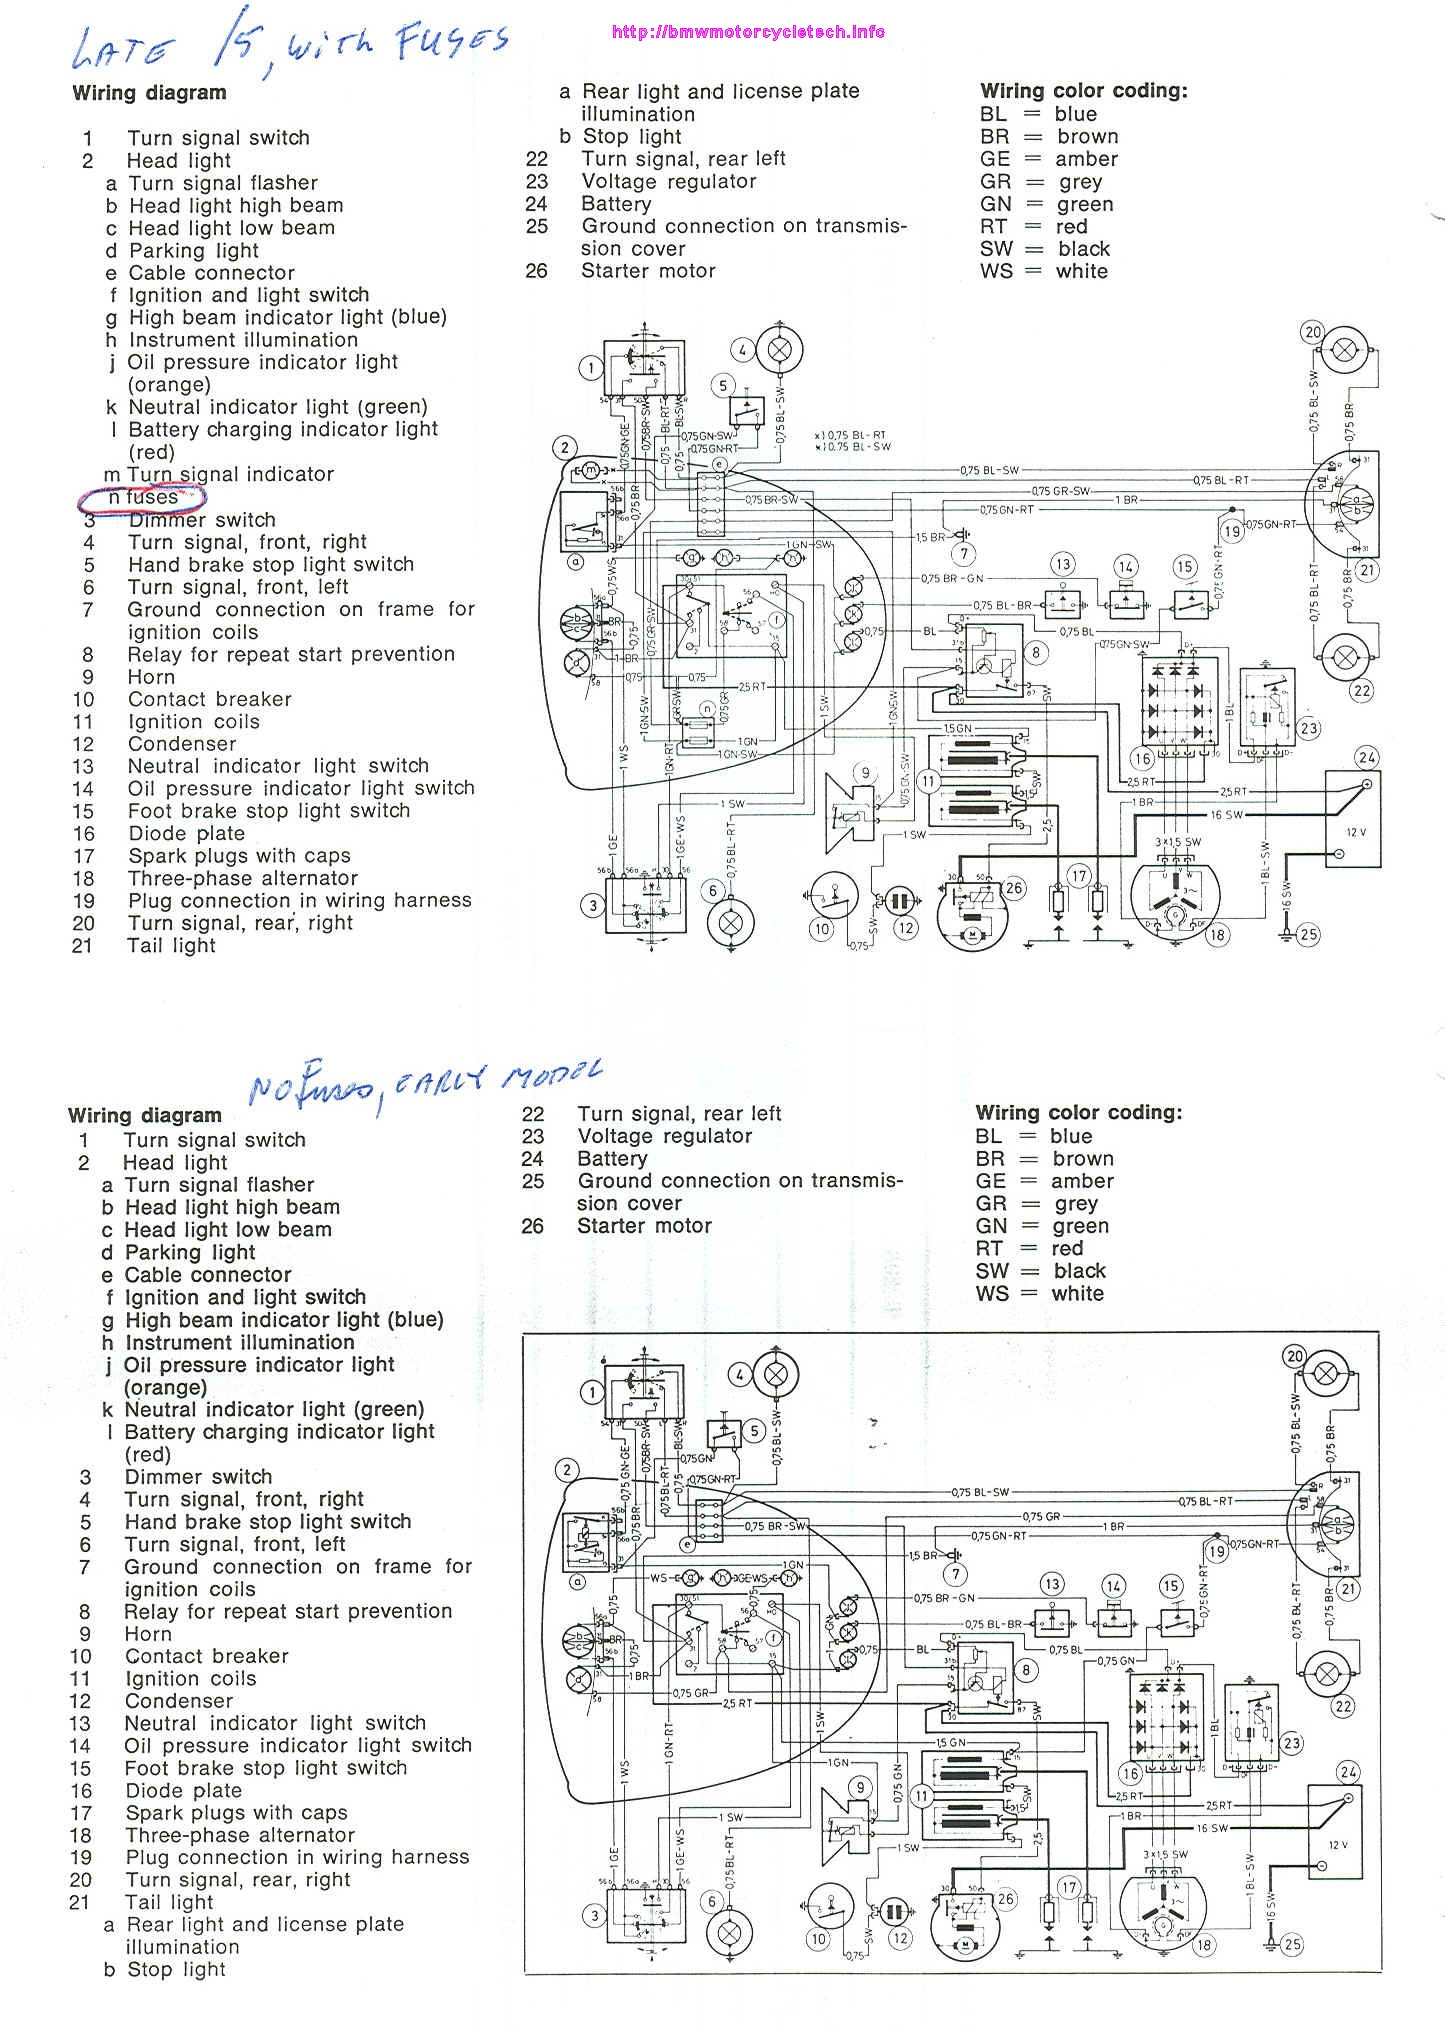 Snowbum Bmw Motorcycle Technical Articles Maintenance Snobum 2001 R1150 Instrument Fuse Box Diagram Schematic Diagrams For Both Early And Late 5 Model Had No Fuses Set Your Browser To Expand The Image As Needed It Will Be Cleanly Displayed